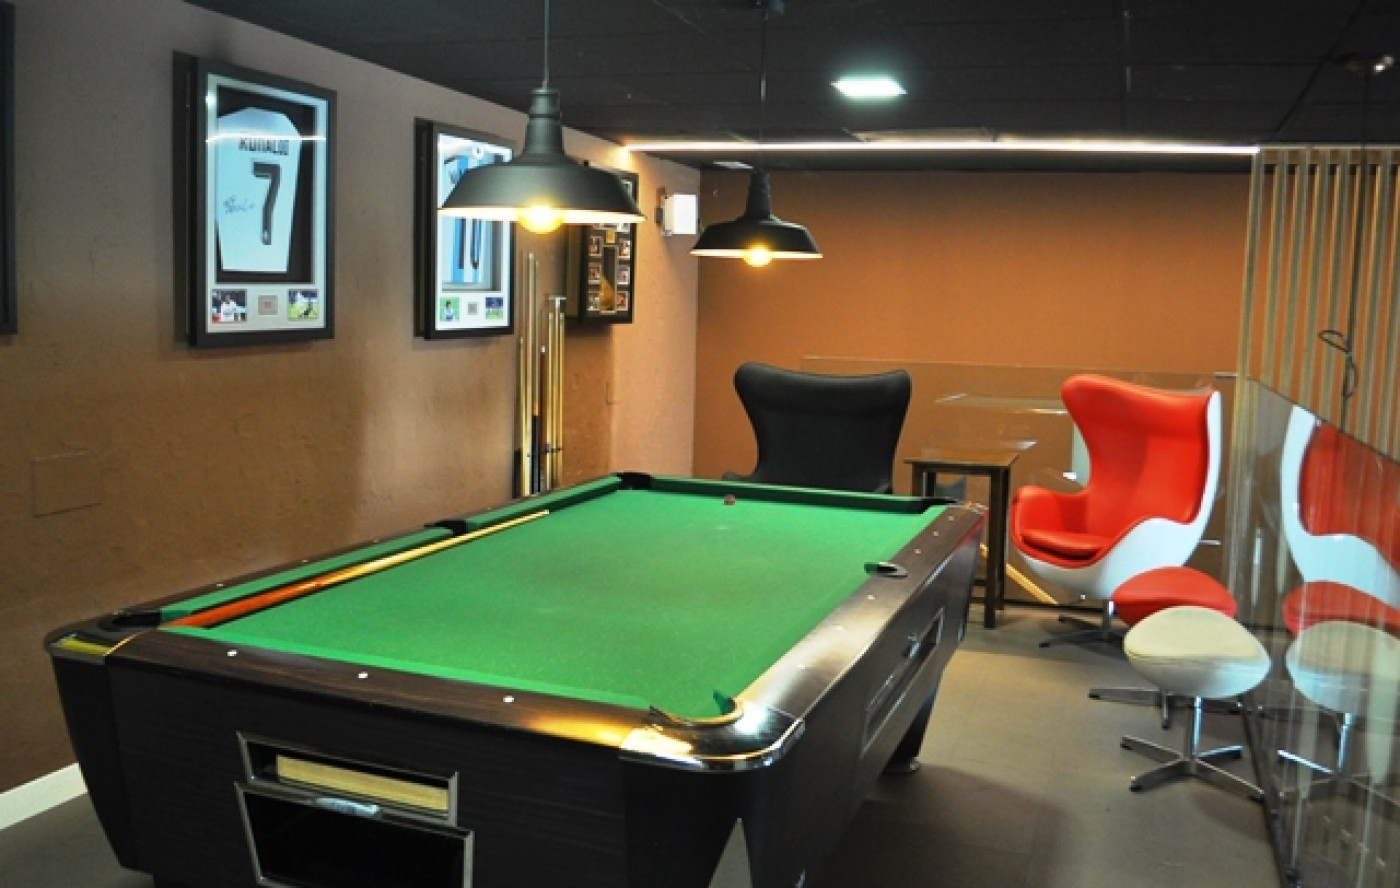 Bar 62 Corvera: eat, drink and relax with live entertainment and sports coverage at this family bar in Corvera